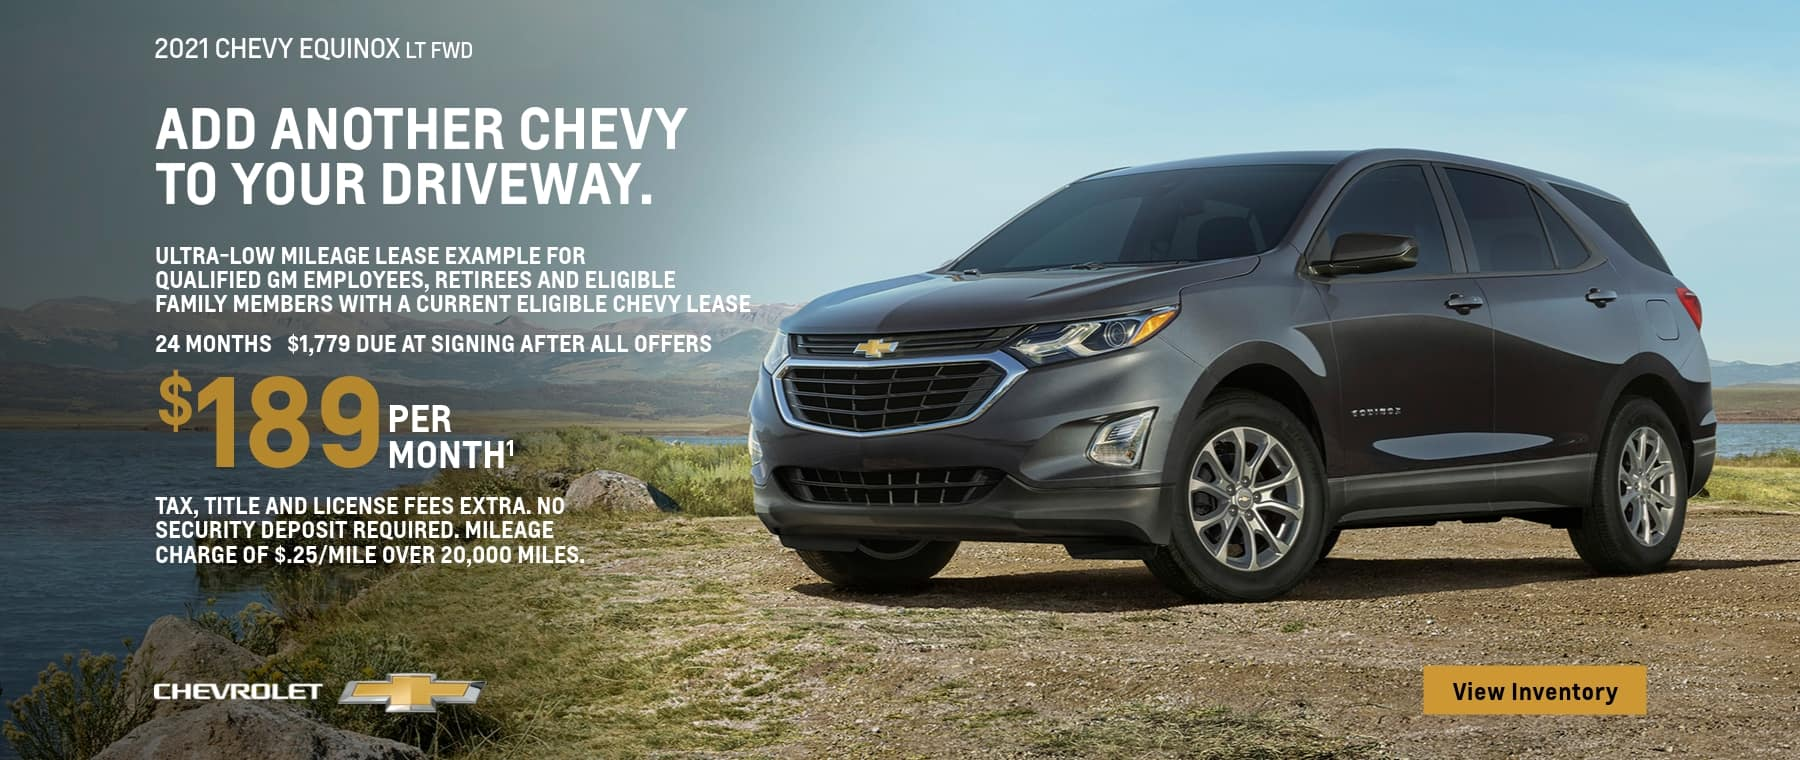 2021 Chevy Equinox LT FWD. Ultra low mileage lease example for qualified GM employees retirees and eligible family members with a current eligible Chevy lease. $189 per month for 24 months. $1,779 due at signing after all offers.